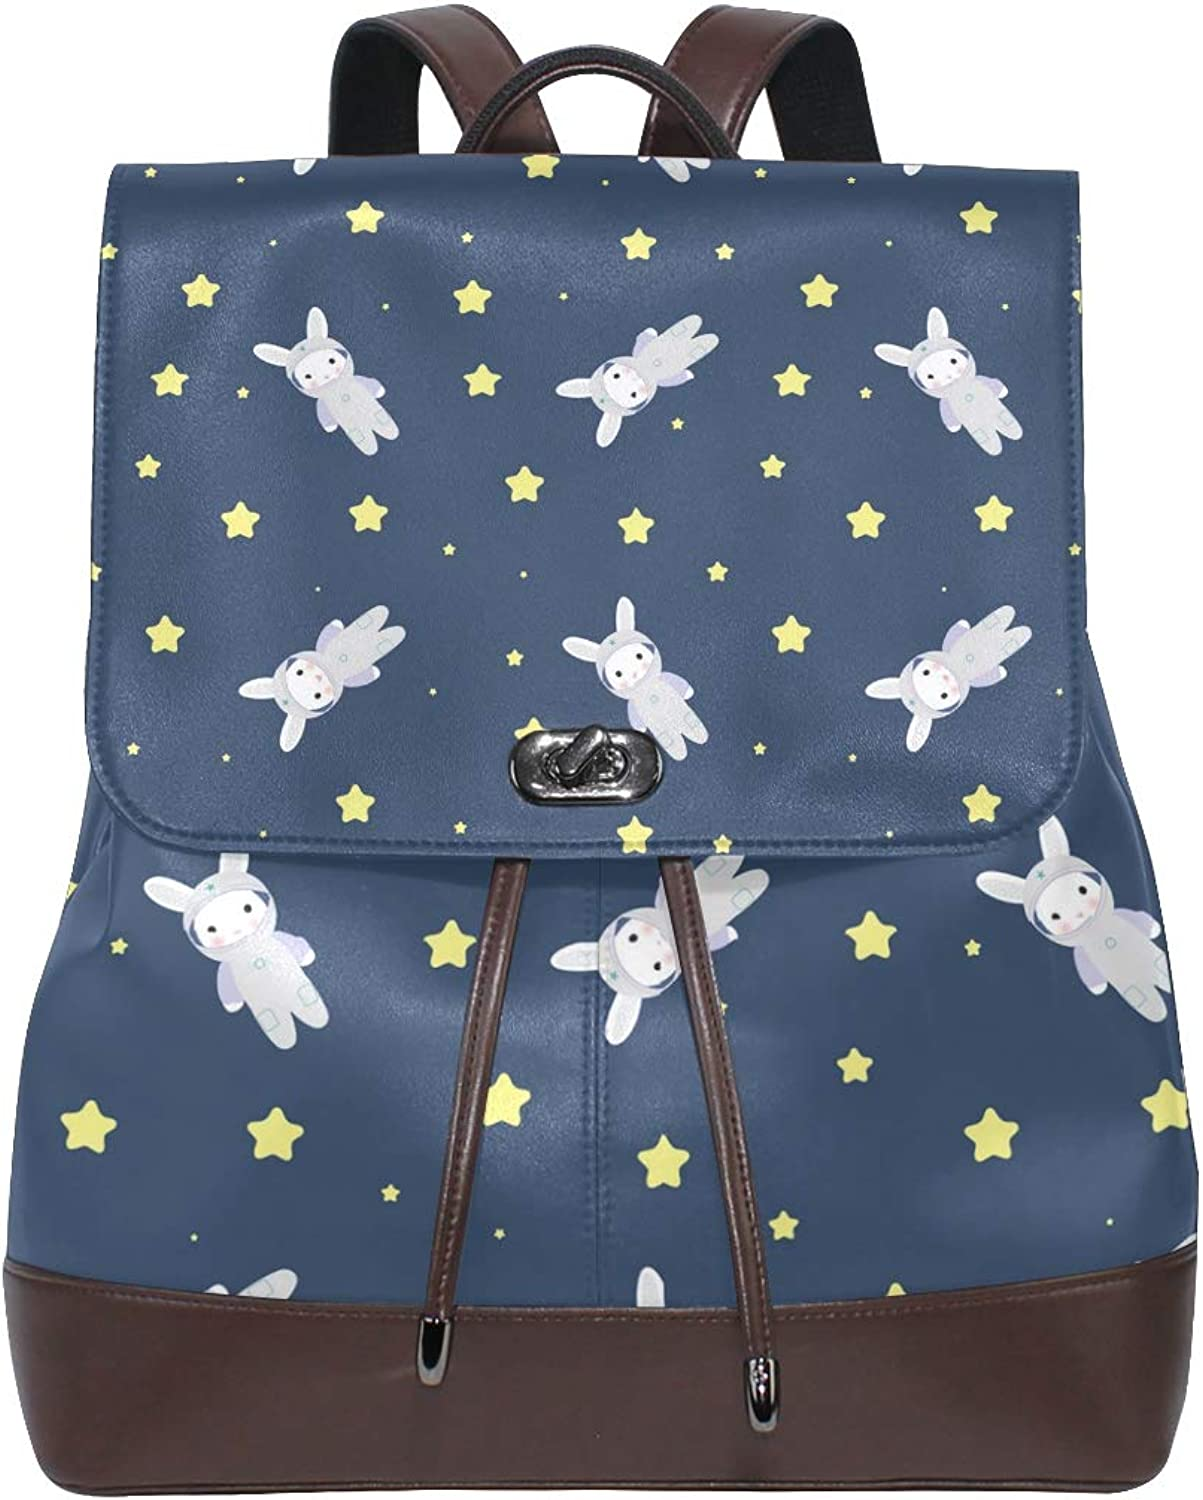 Unisex PU Leather Backpack blueee Cute Astronaut Bunny Print Women's Casual Daypack Mens Travel Sports Bag Boy's College Bookbag